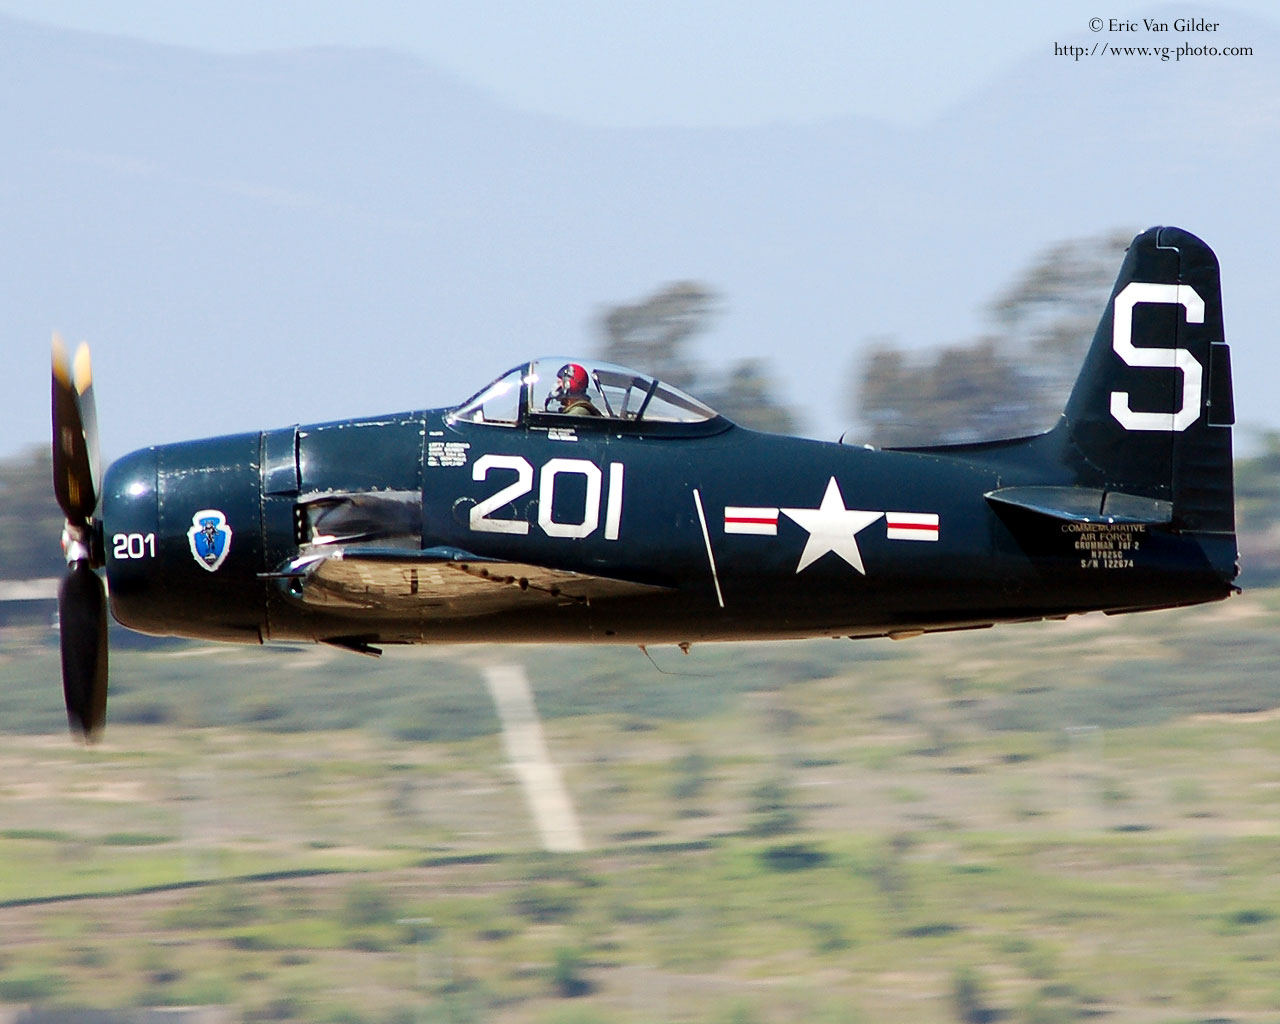 Trumpeter F8F bearcat - Page 2 - LSP Discussion - LSP ...